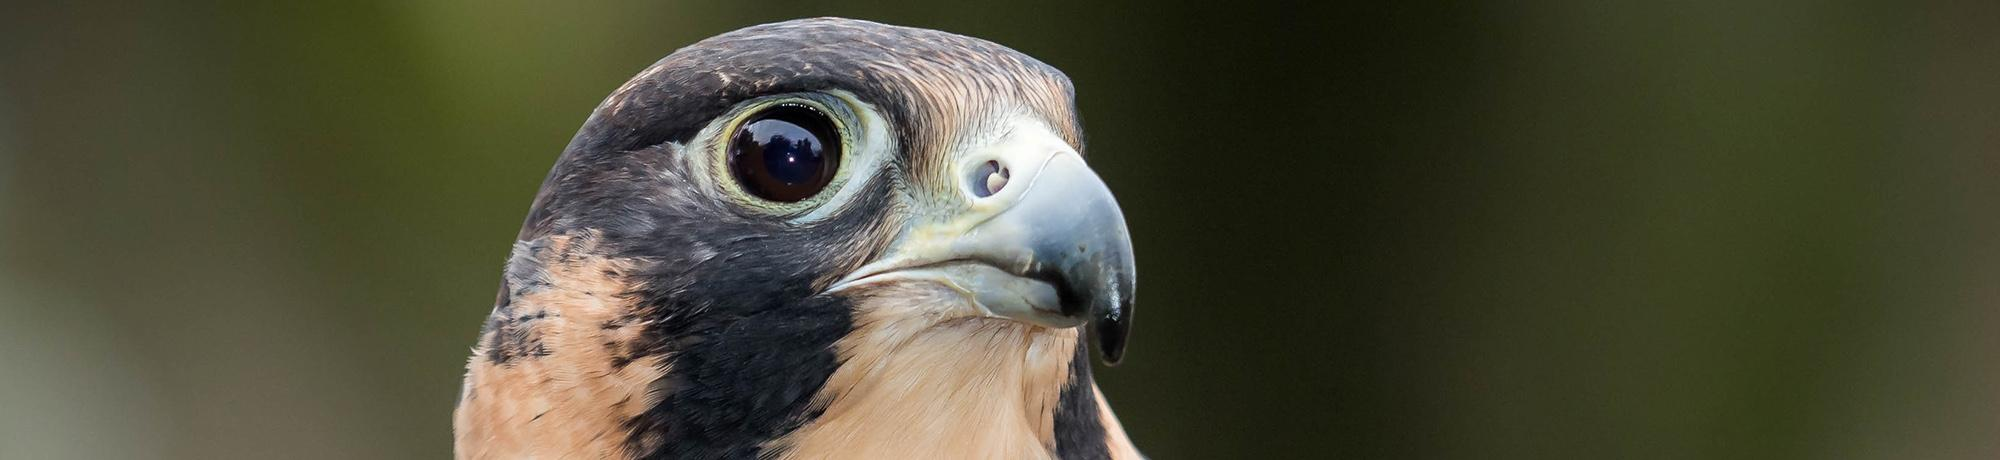 Phoenix is a peregrine falcon